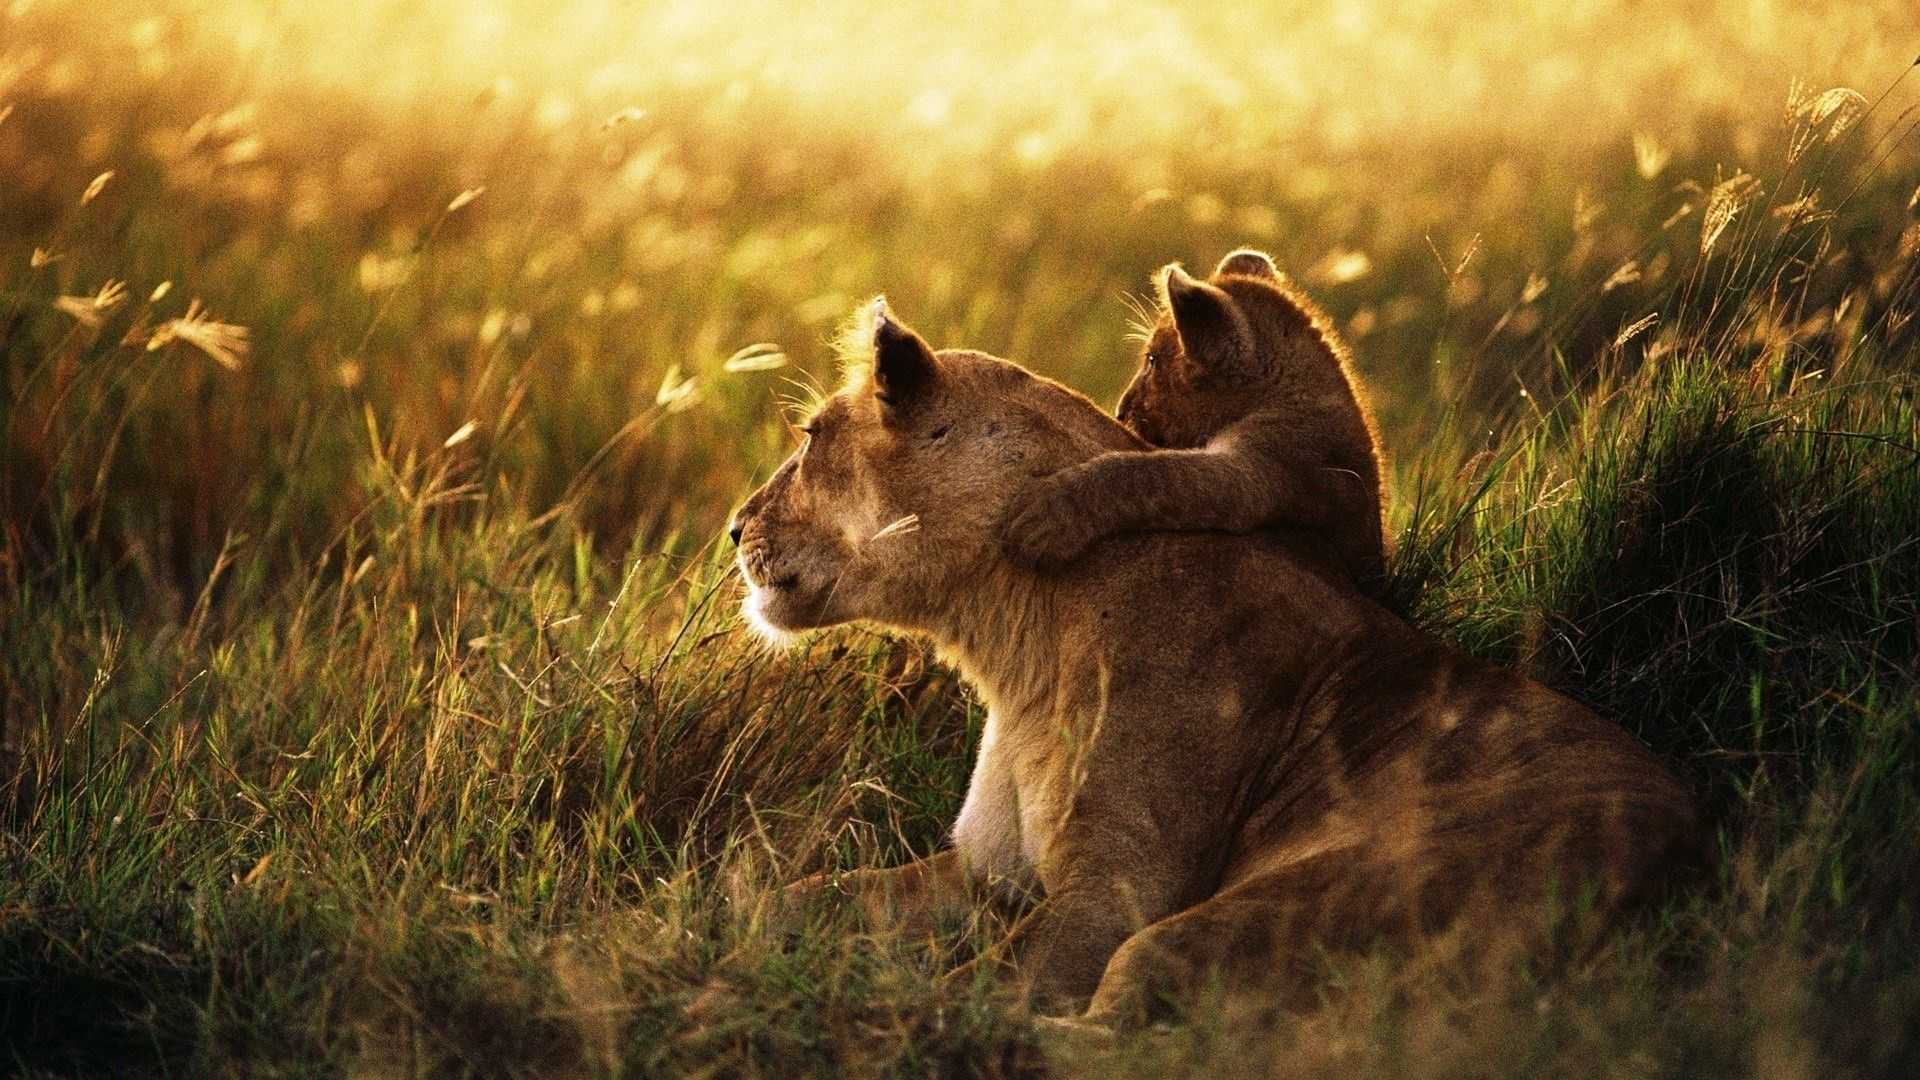 Lioness With Lion Cub Wallpaper Cats My Tiny Love S 3 Pinterest